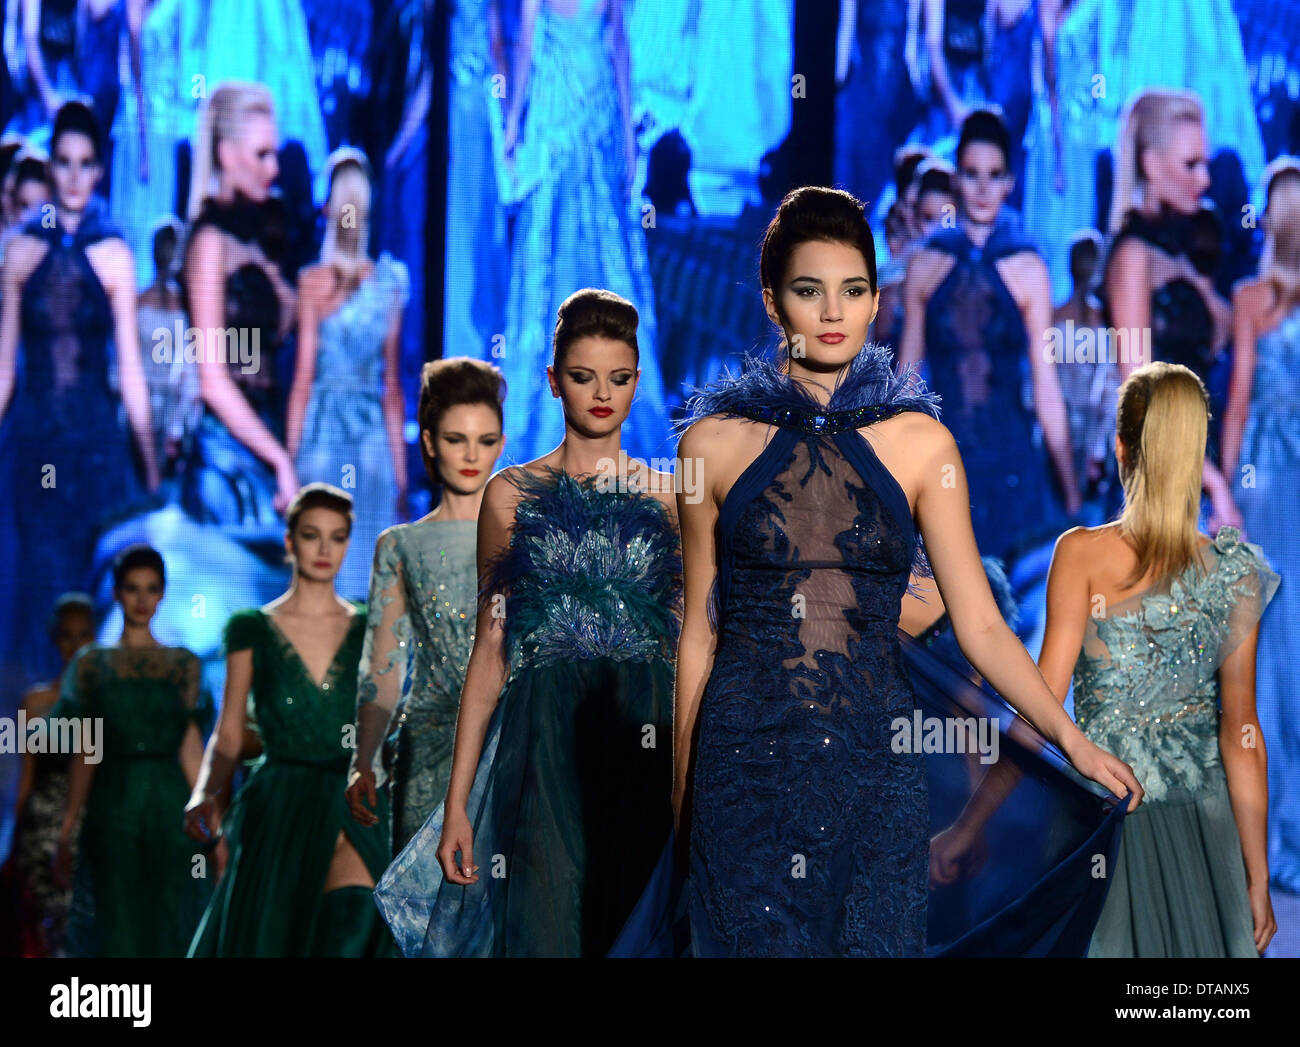 Prague, Czech Republic . 13th Feb, 2014. A model walks the runway during a dress rehearsal for the Blanka Matragi's - Stock Image